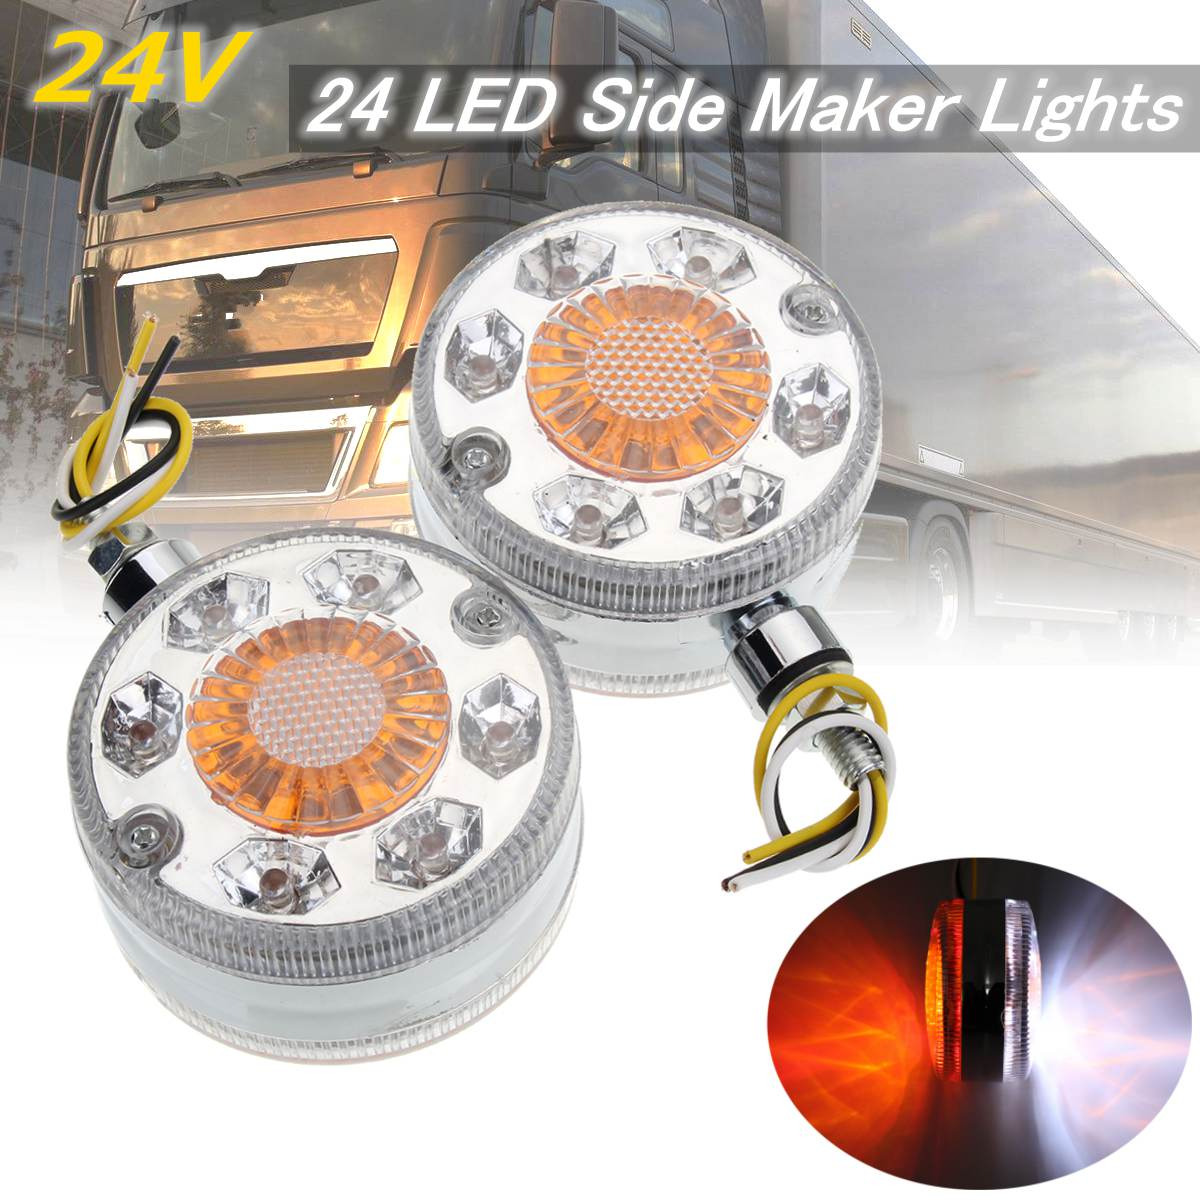 2x Chrome Red White Amber 24LED 24V Side Maker Lights For SCANIA DAF MAN RENAULT